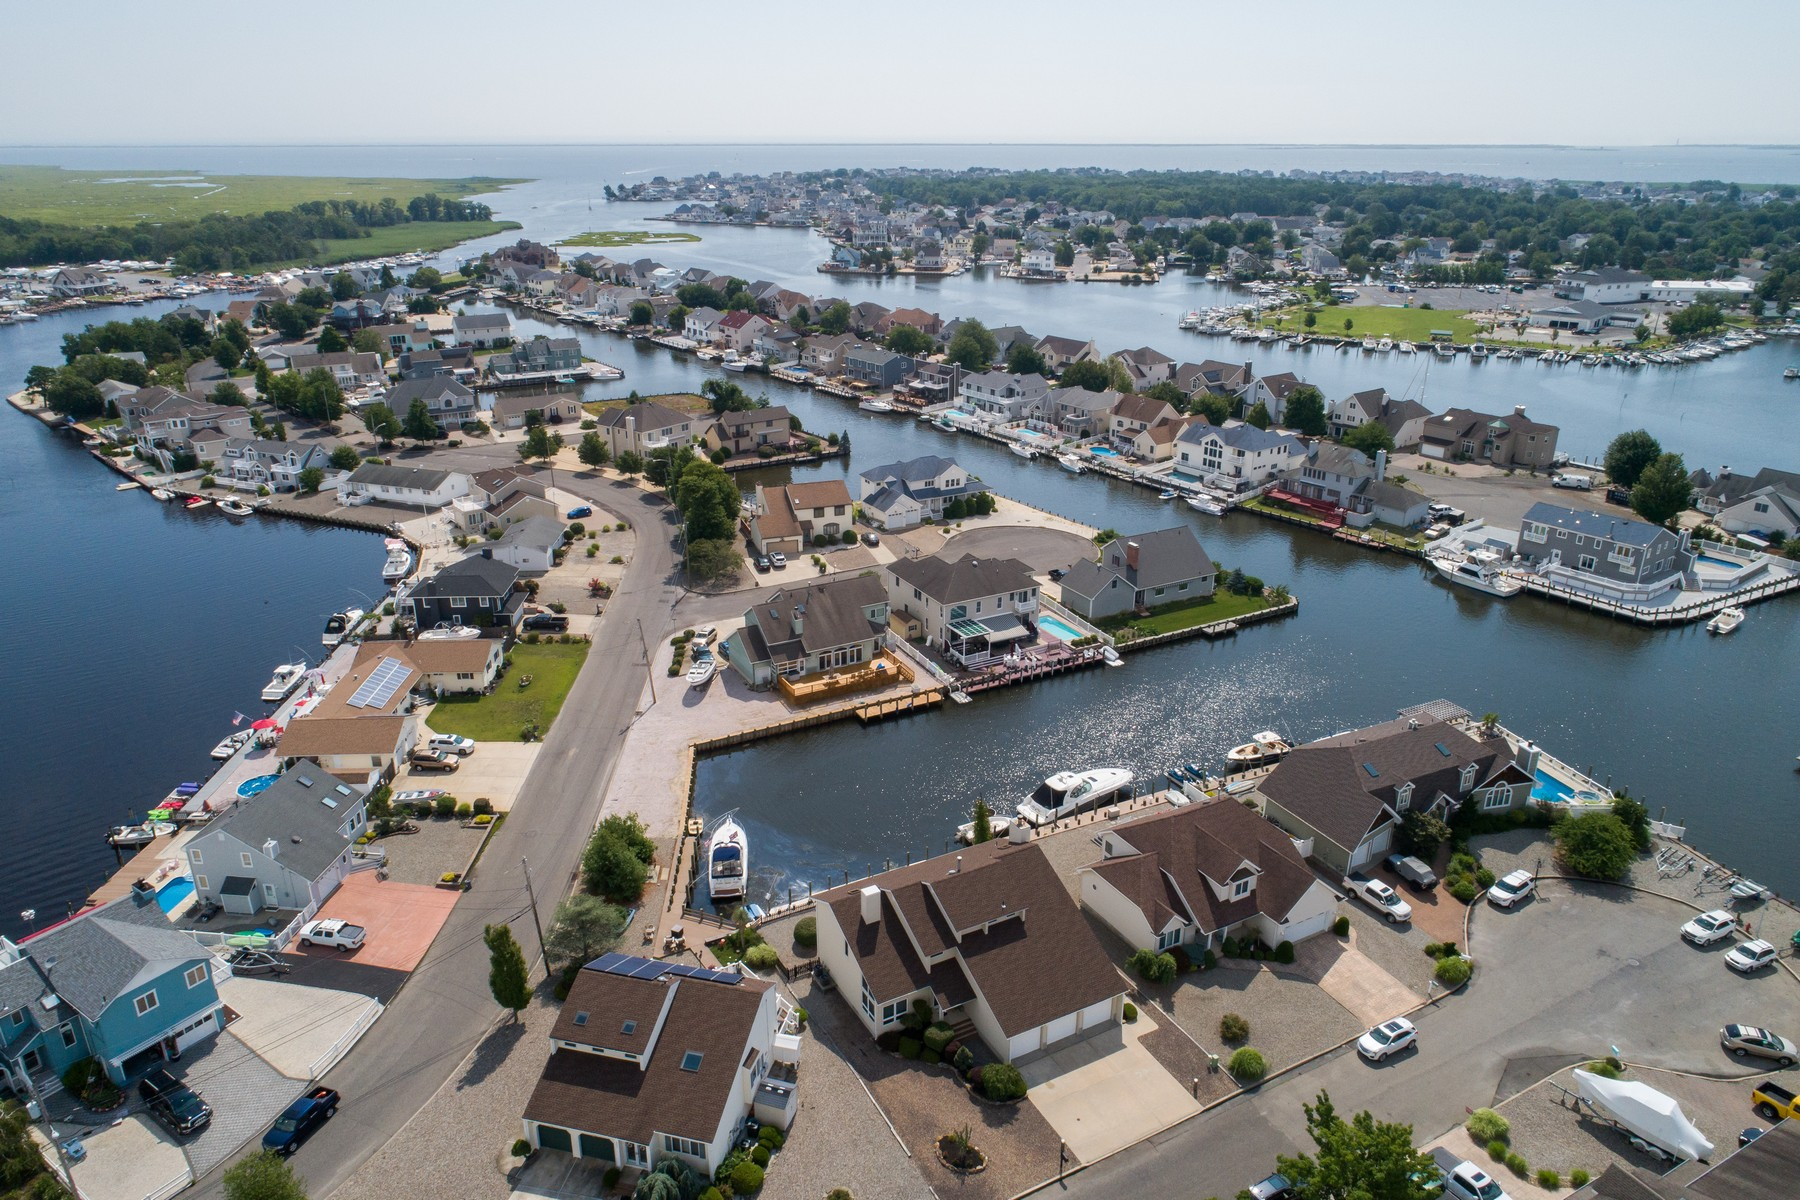 Single Family Homes for Sale at LIVE WATERFRONT 602 Franklin Court Forked River, New Jersey 08731 United States